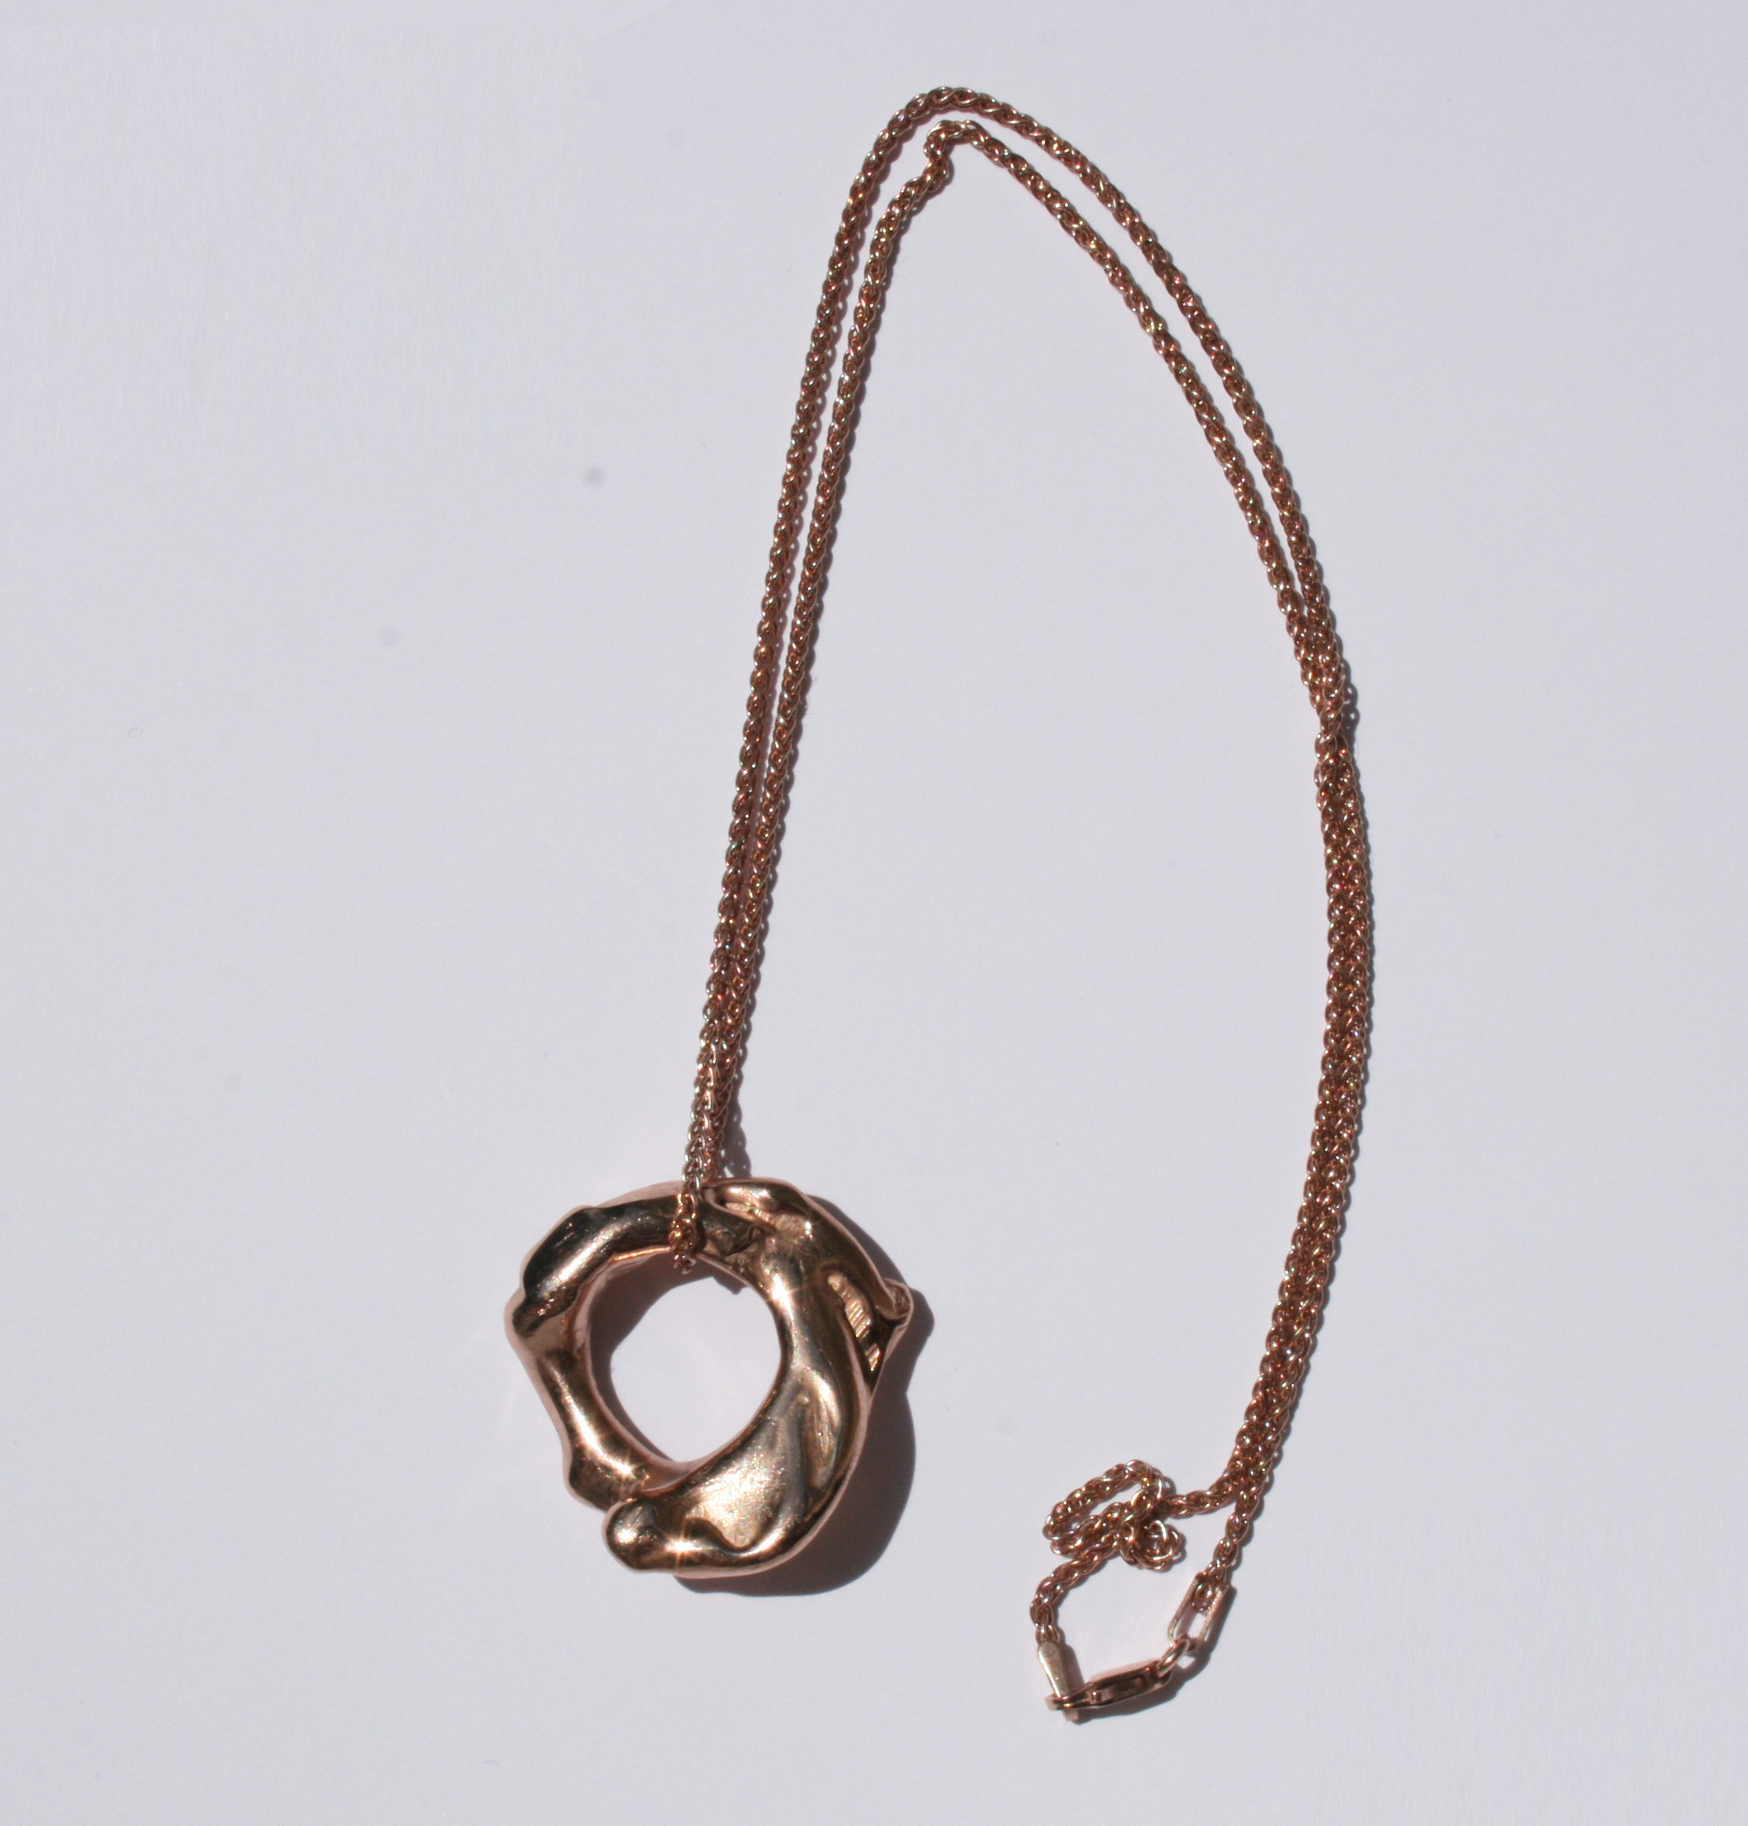 Mauna Loa rose gold necklace - Filia Rex